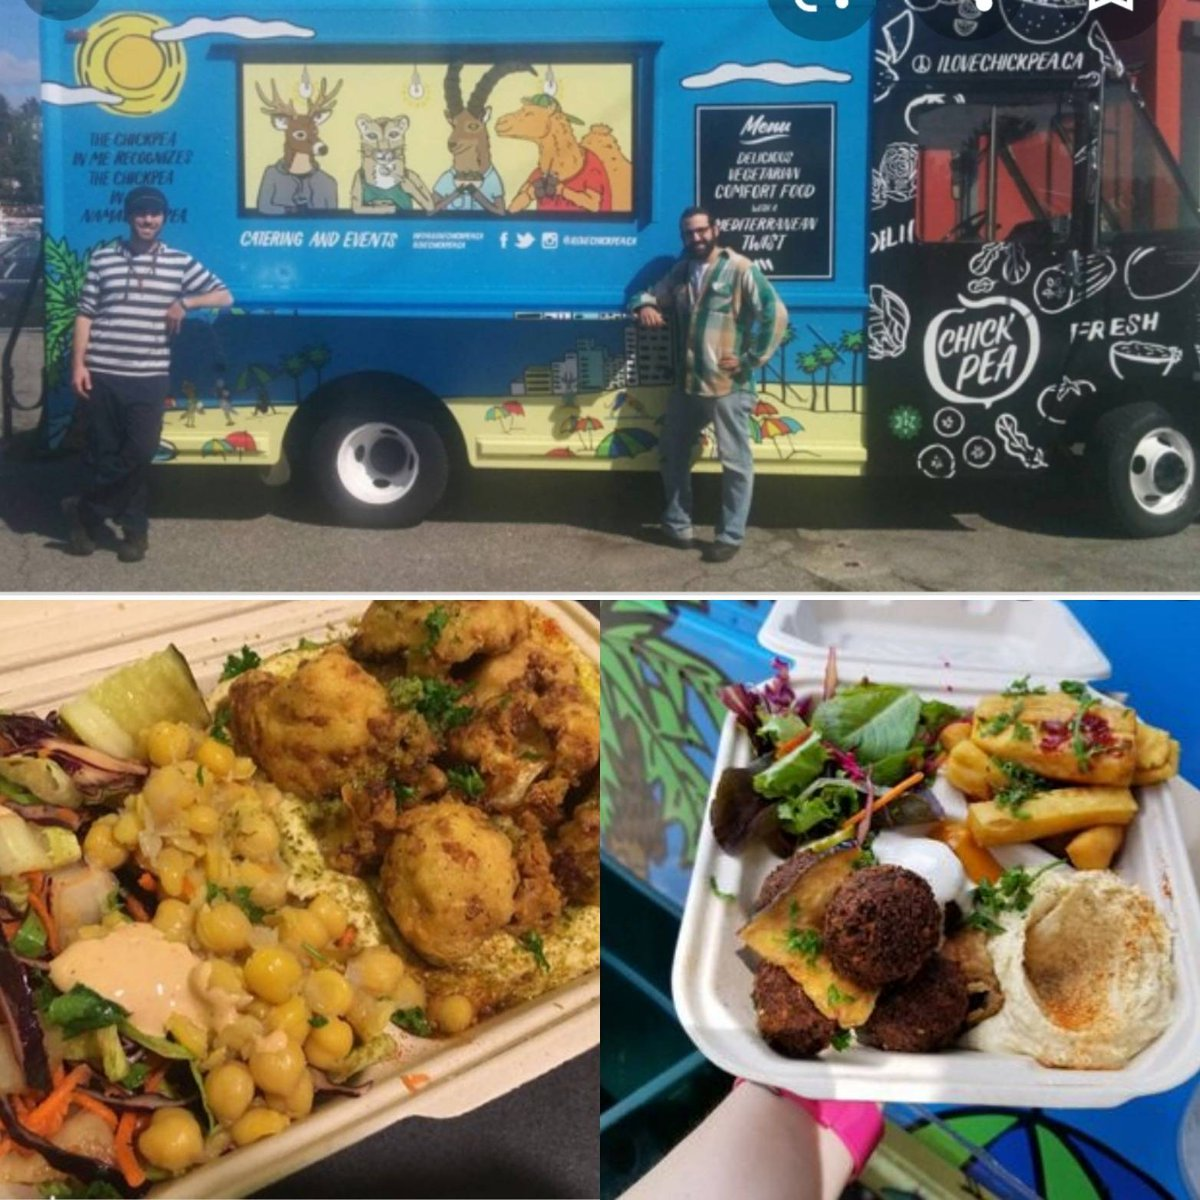 test Twitter Media - Super excited, another stellar food truck for Friday night #ilovechickpea Food Truck will be in the back of #NumbersCabaret today from 5 to 10. Lots of room inside in case it rains https://t.co/ucqpKFfVIC